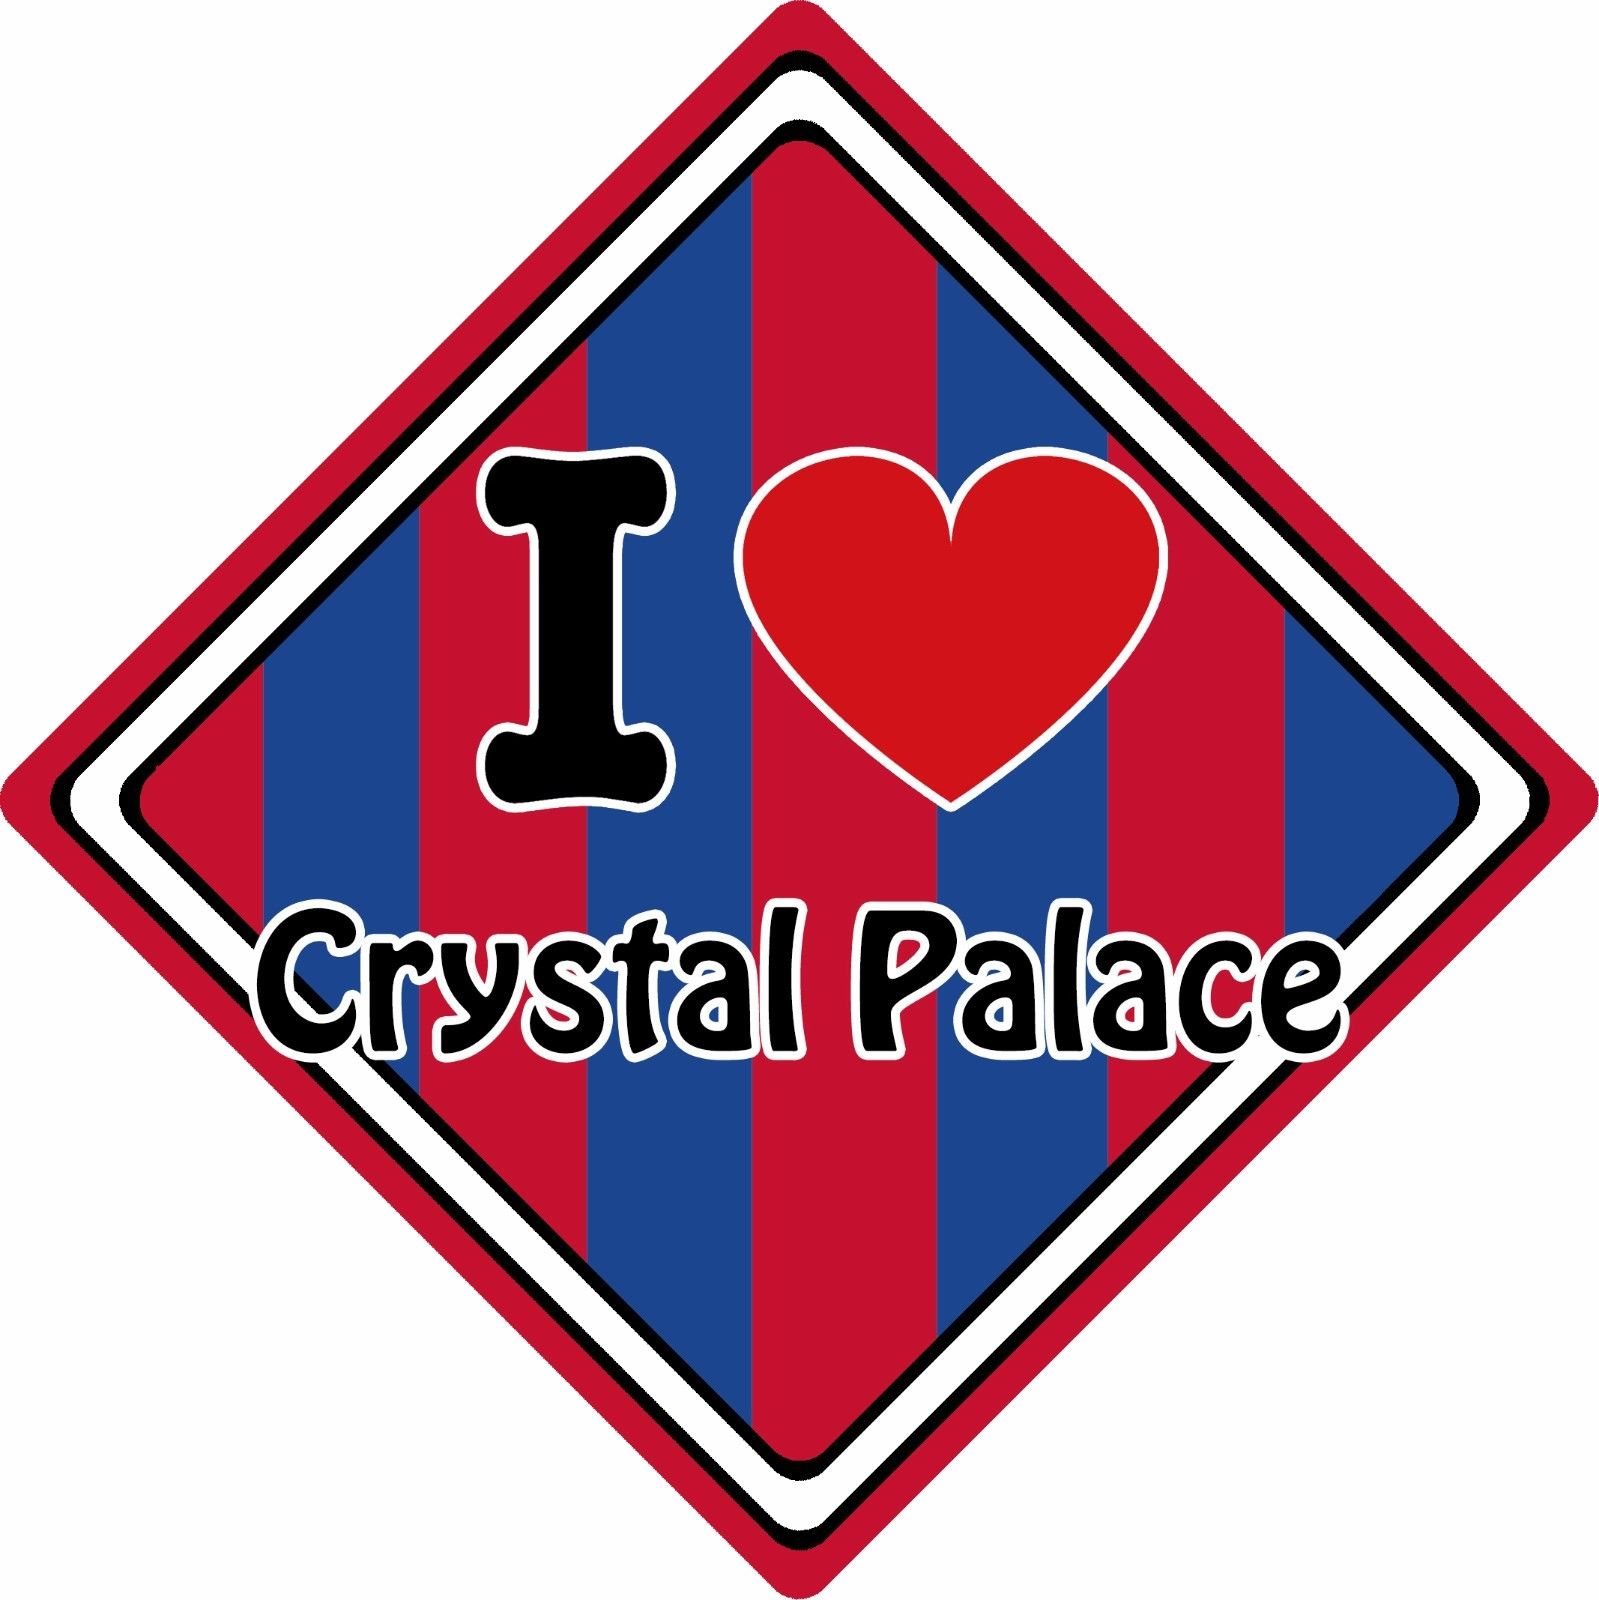 I-Love-Crystal-Palace-Car-Sign-Support-Your-TownCity-FootballRugbyCricket-152387949795